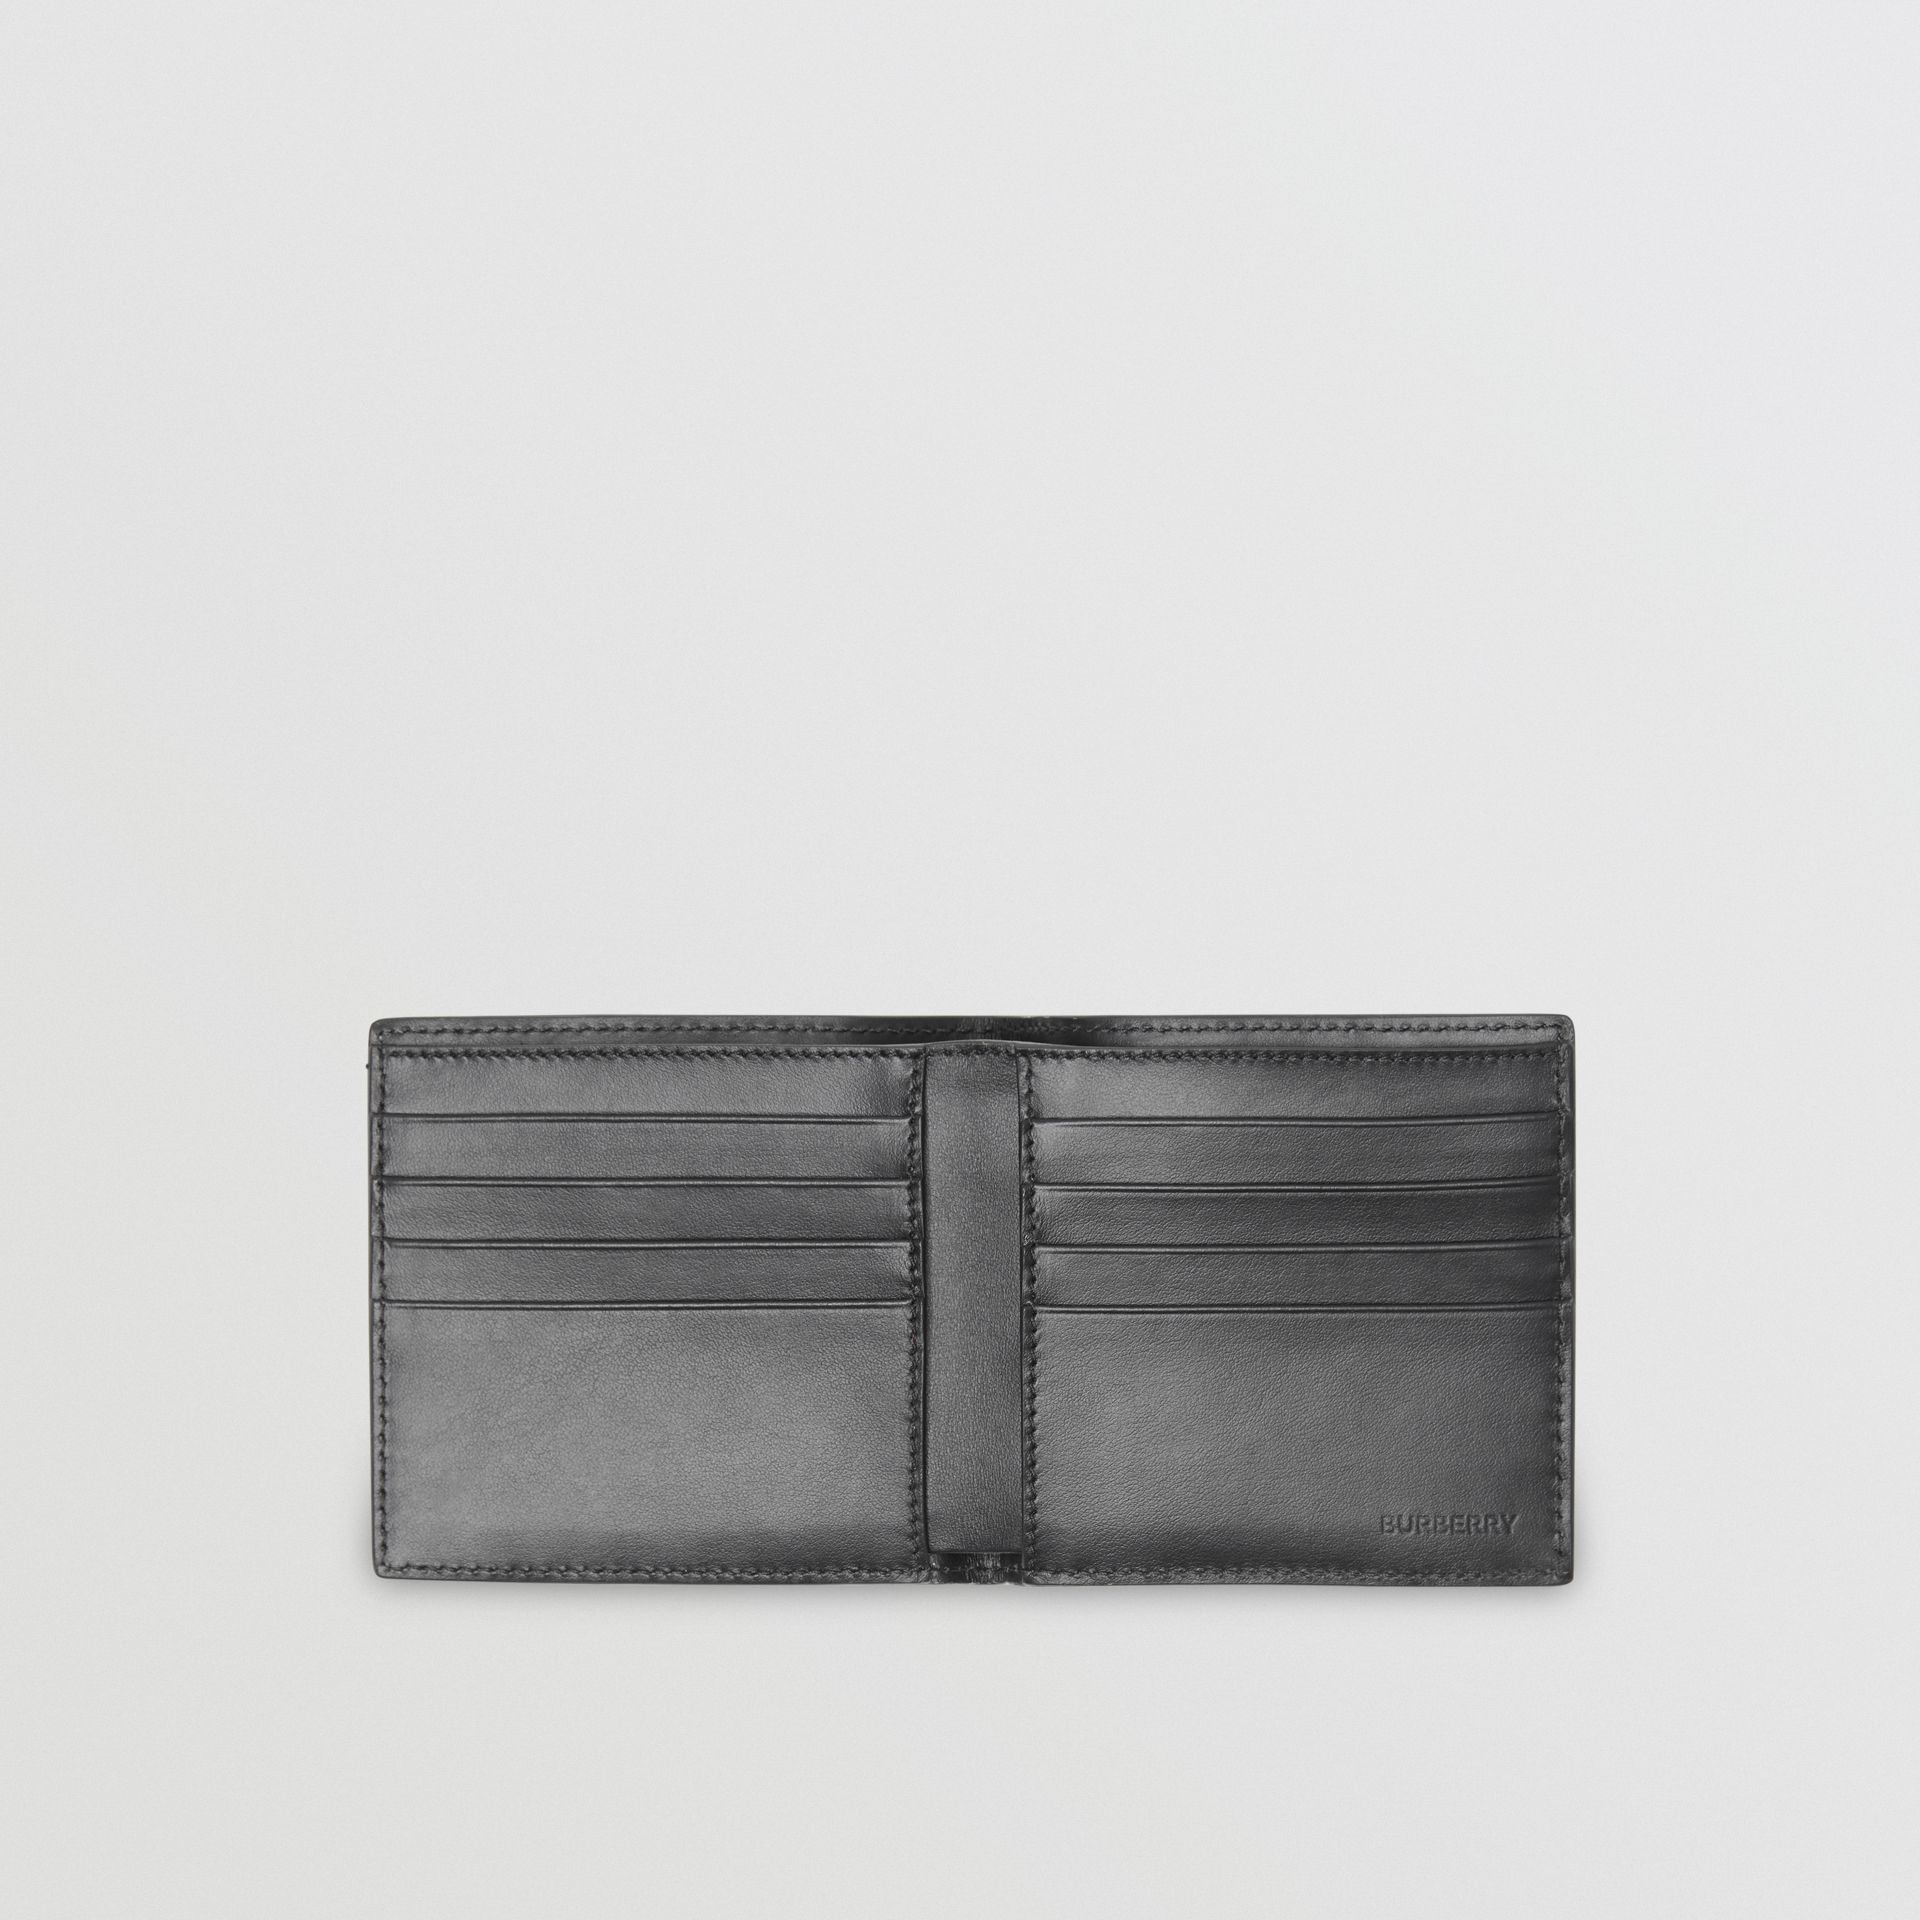 Monogram Leather International Bifold Wallet in Black | Burberry - gallery image 3